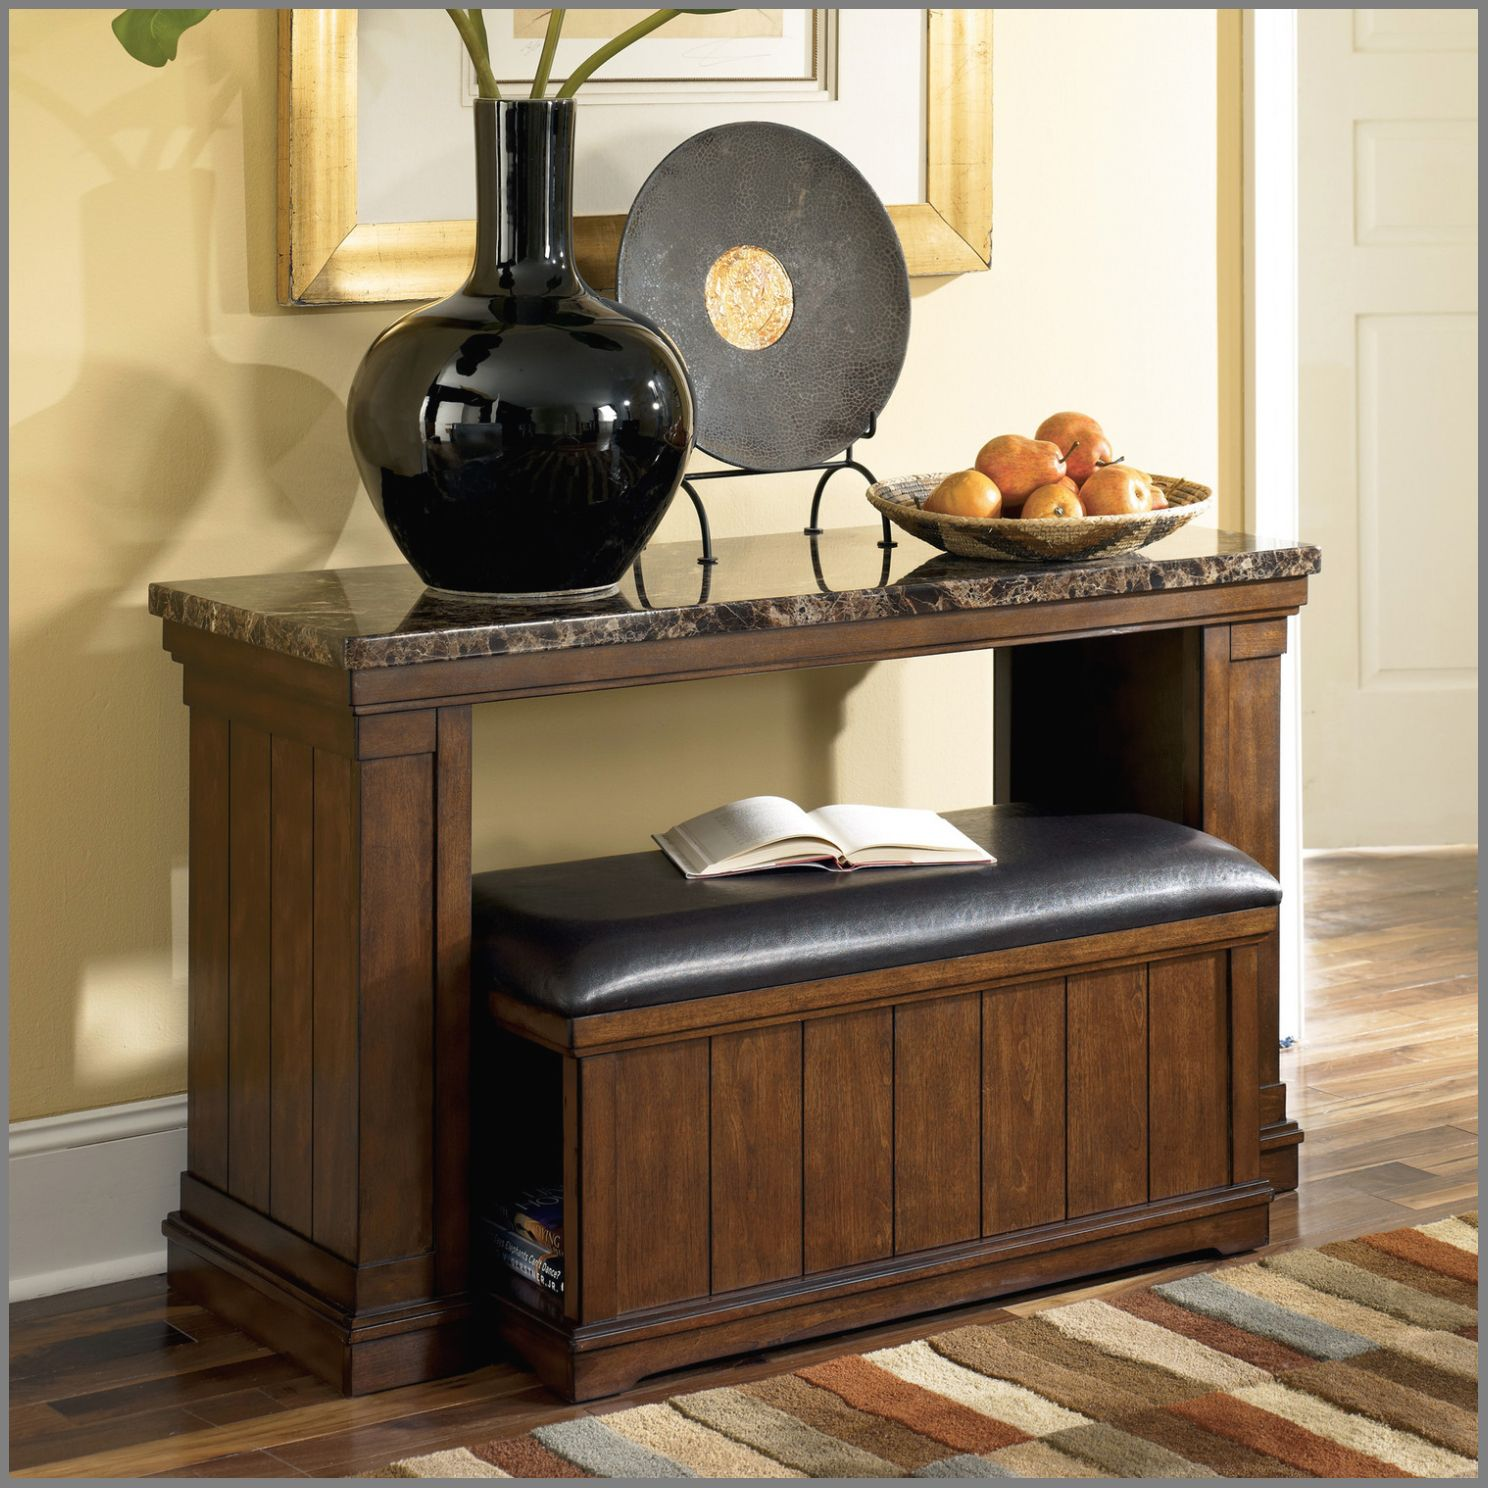 accent table decor decorating ideas victoria homes design charming why santa claus pottery barn kitchen tables and chairs college dorm room mirrored tray dark wood bedside nesting